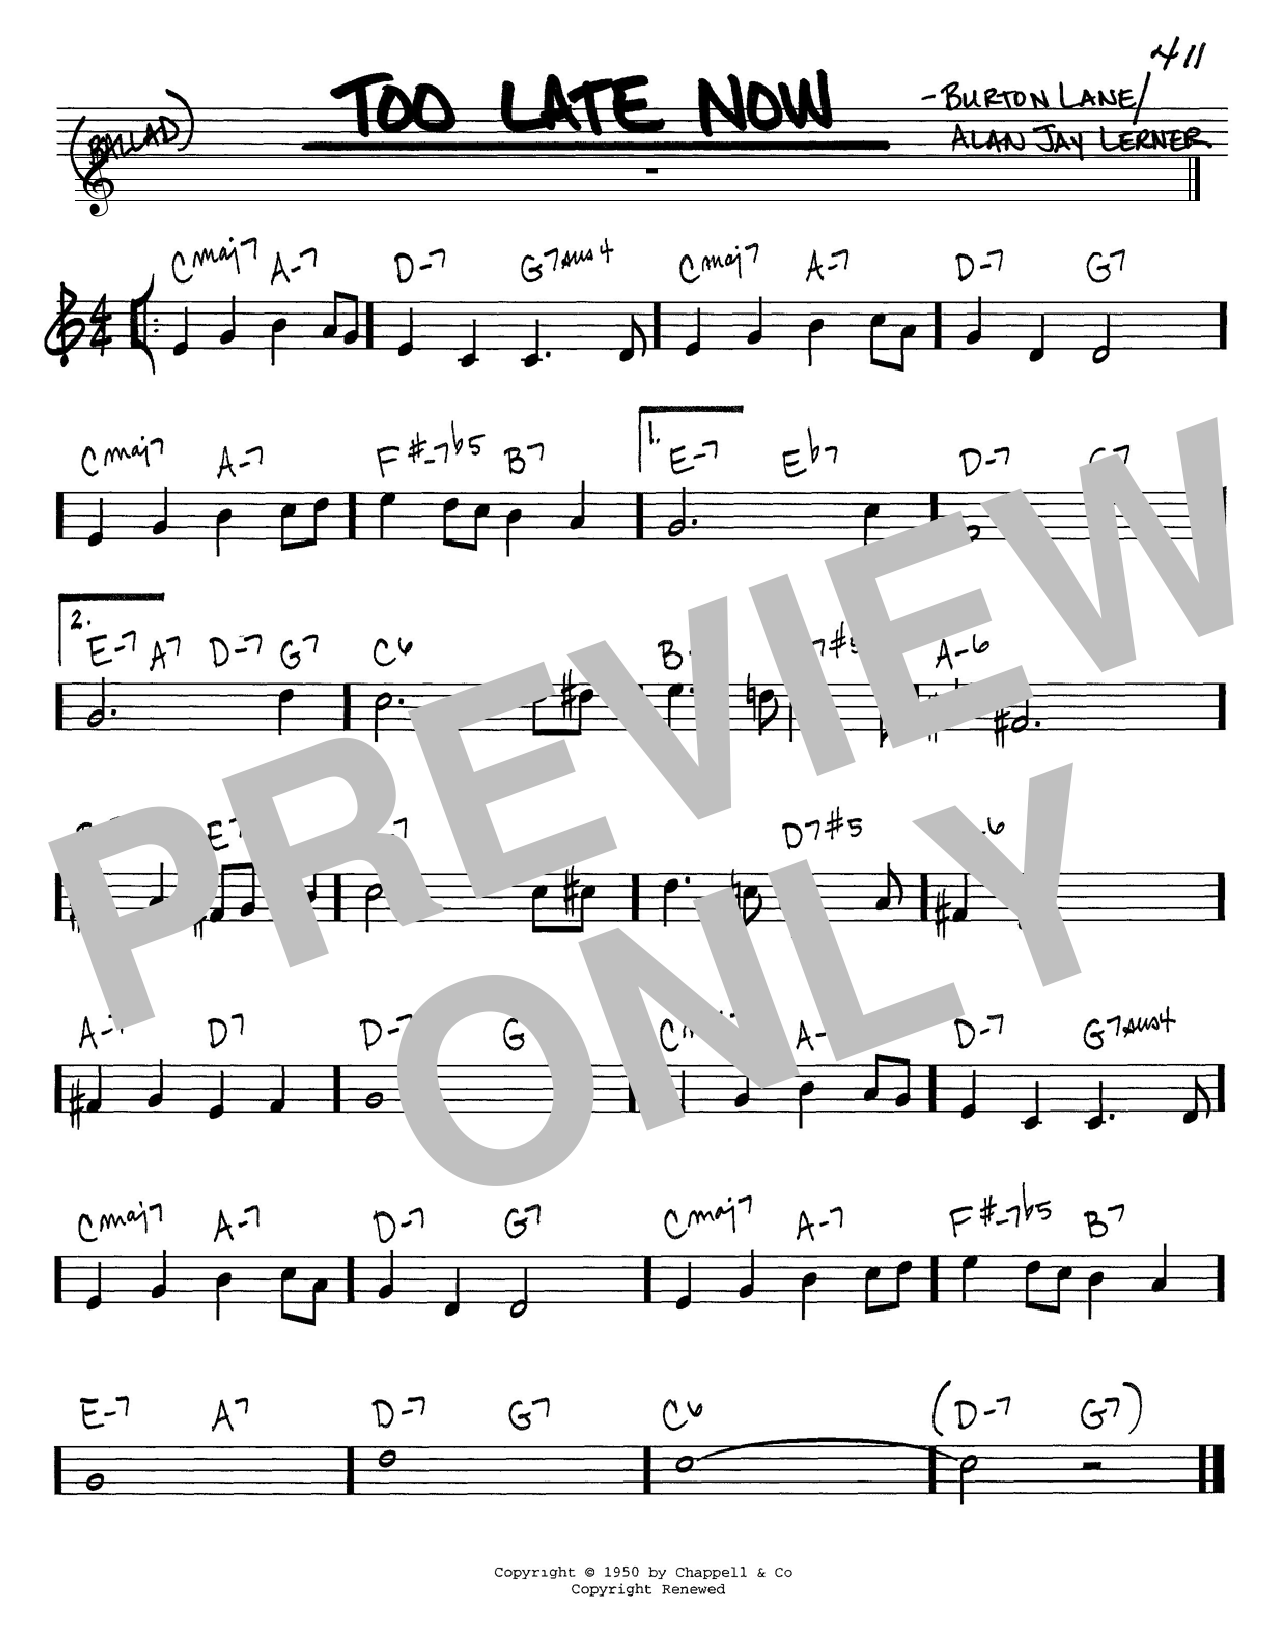 Download Alan Jay Lerner 'Too Late Now' Digital Sheet Music Notes & Chords and start playing in minutes